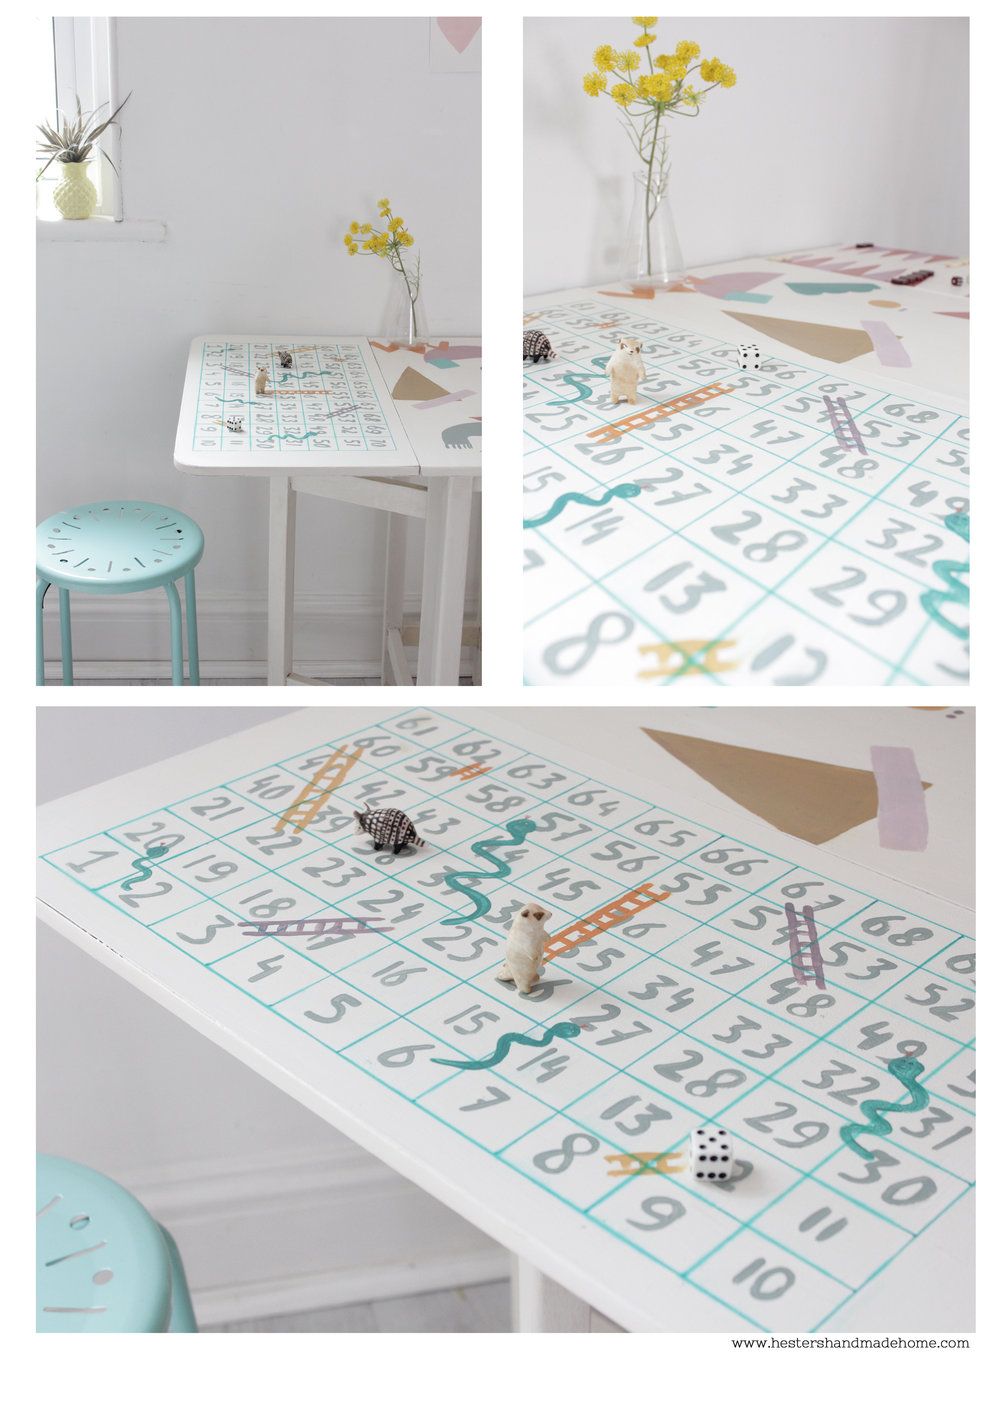 Snakes and ladders games table by www.hestershandmadehome.com